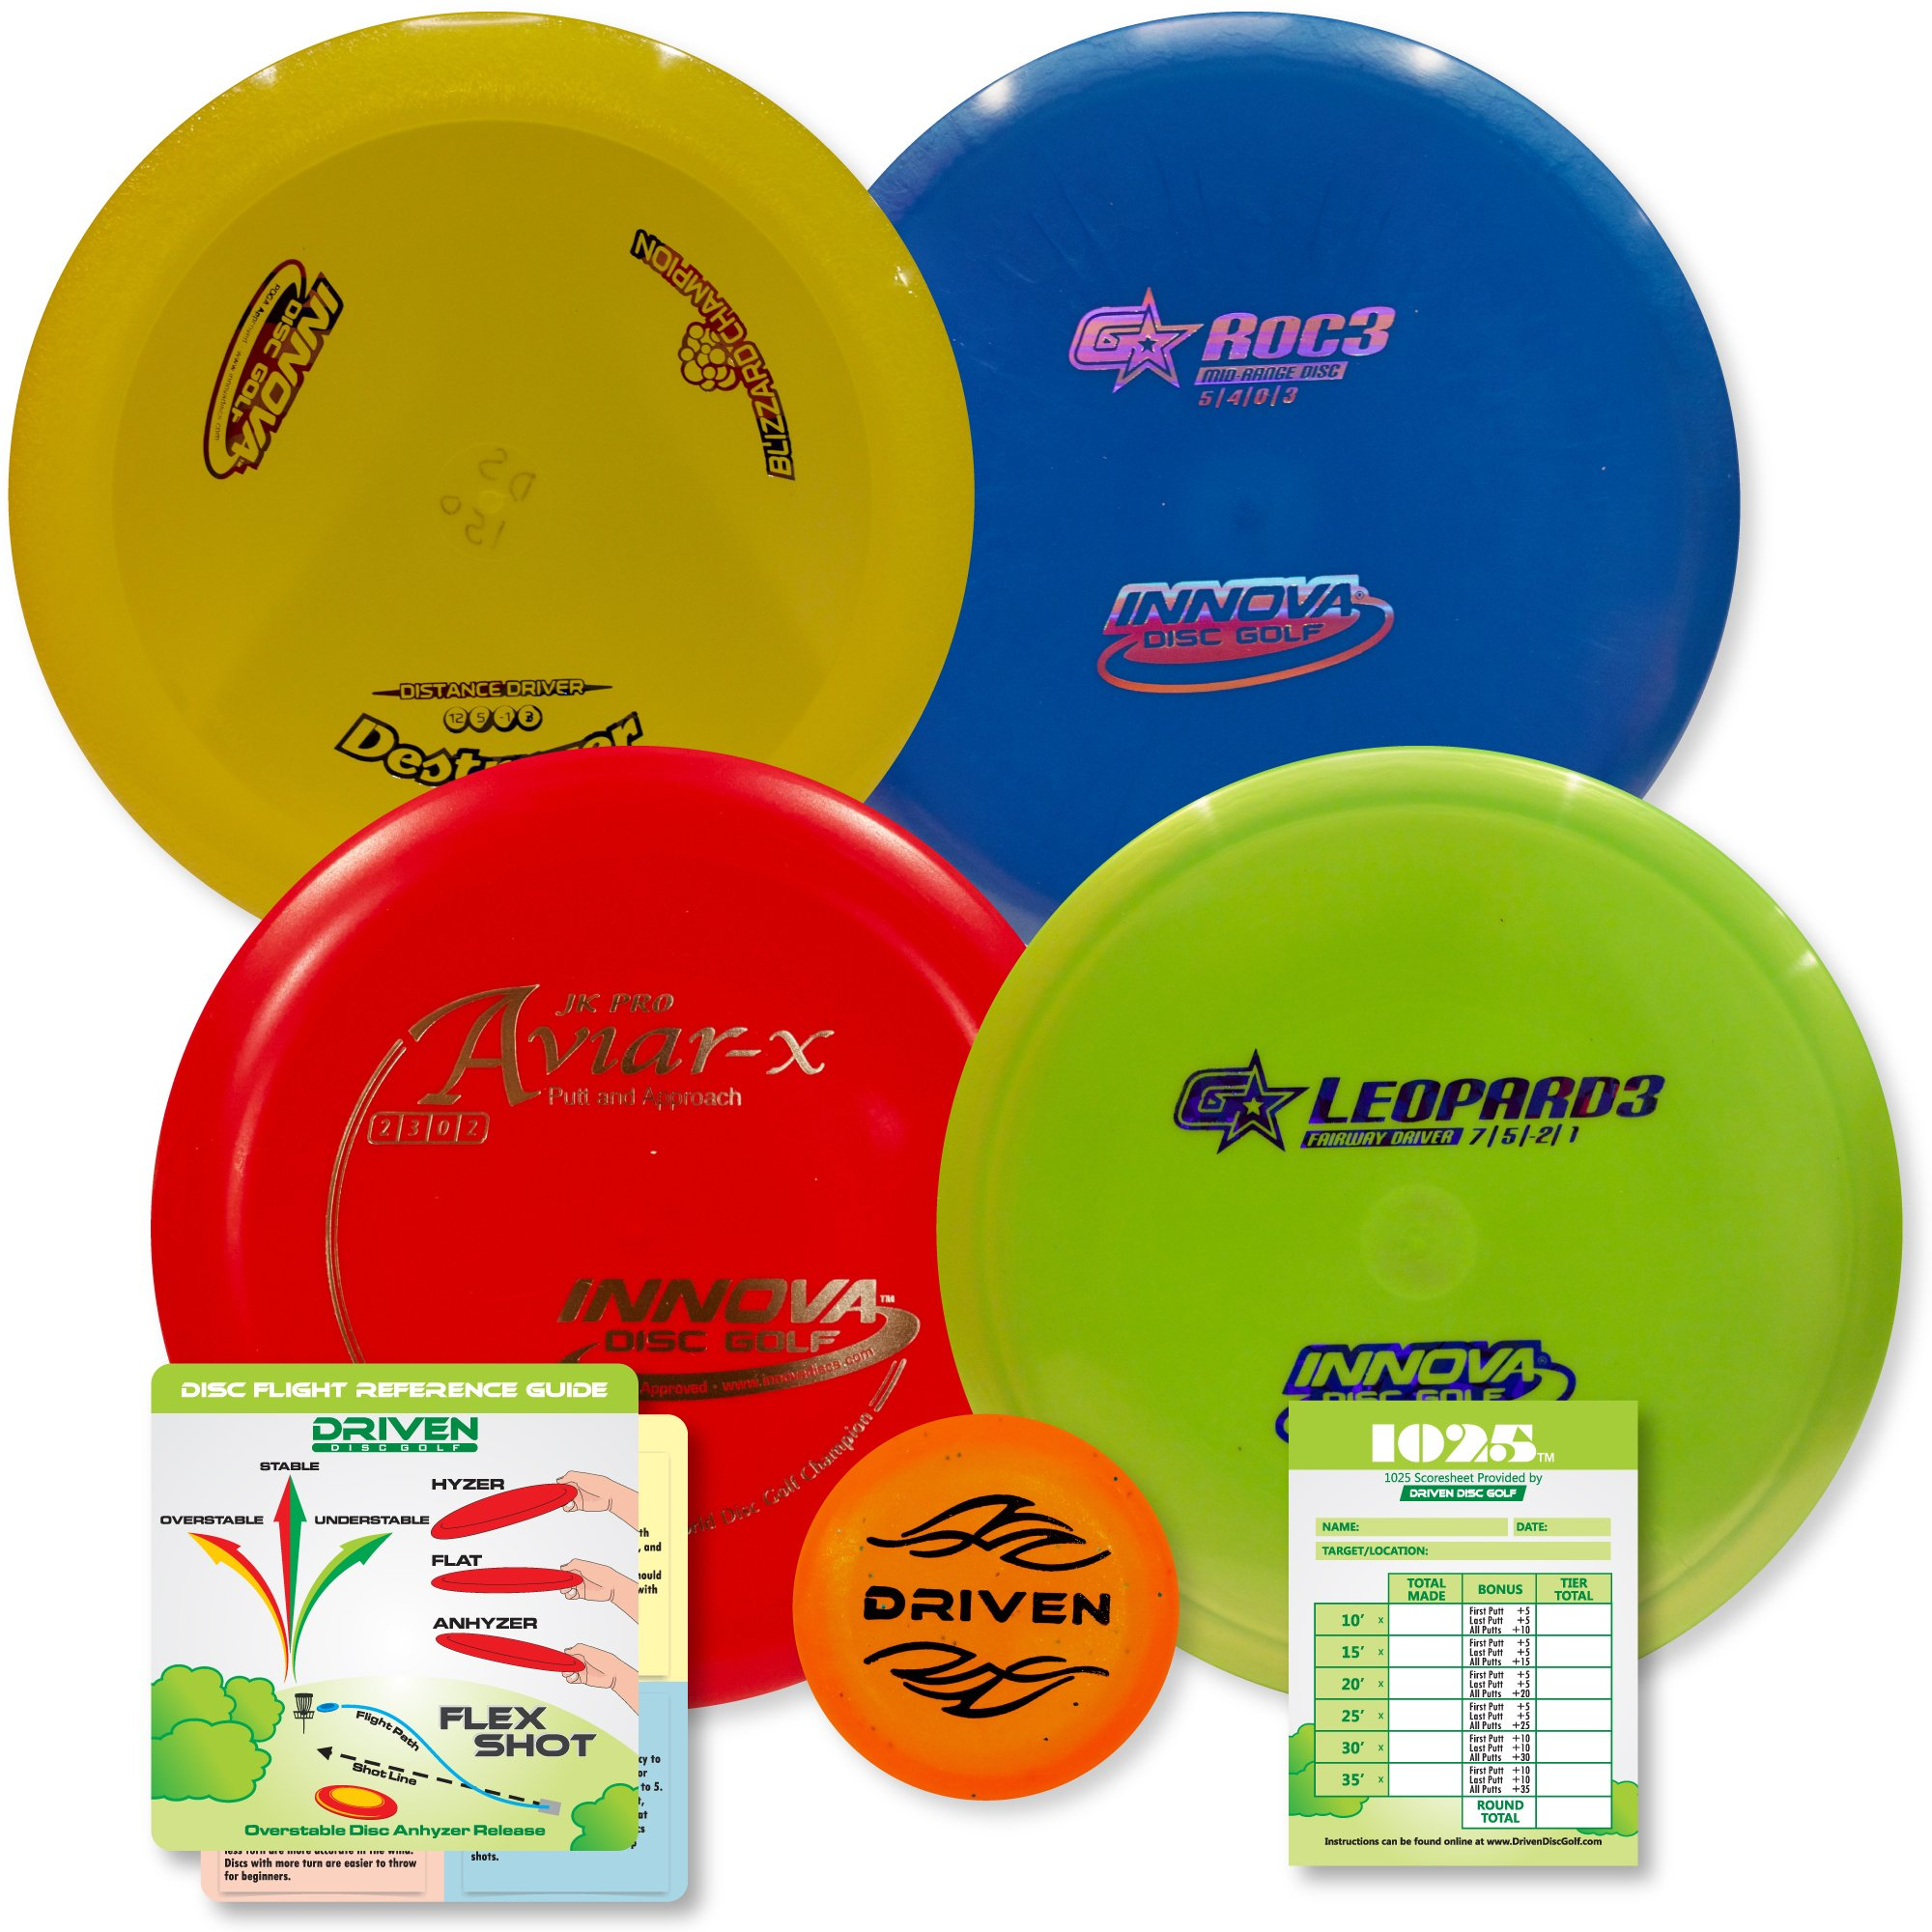 Innova Disc Golf Advanced Players Pack   Premium 4 Disc Set - for Intermediate and Experienced Players - 1025 Putting Game - Flight Reference Card - Driven Mini Marker   Disc Colors Vary by Driven Disc Golf